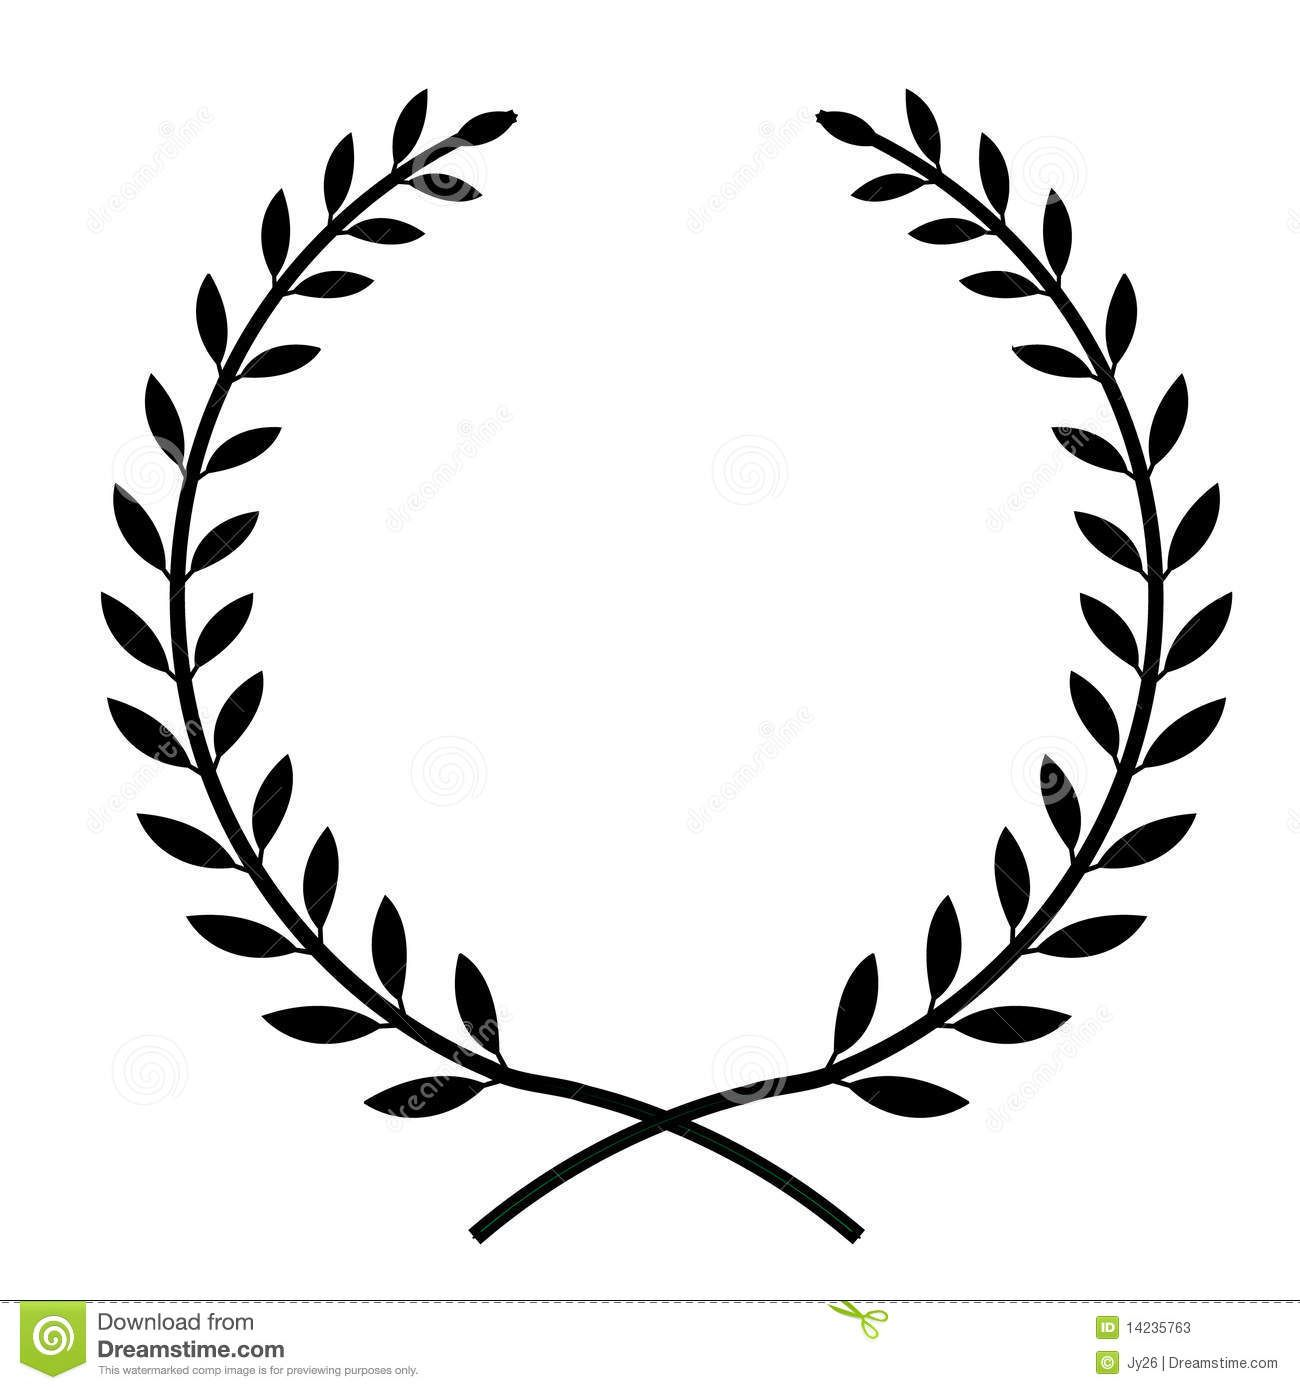 Fern clipart olive. Free download clip art